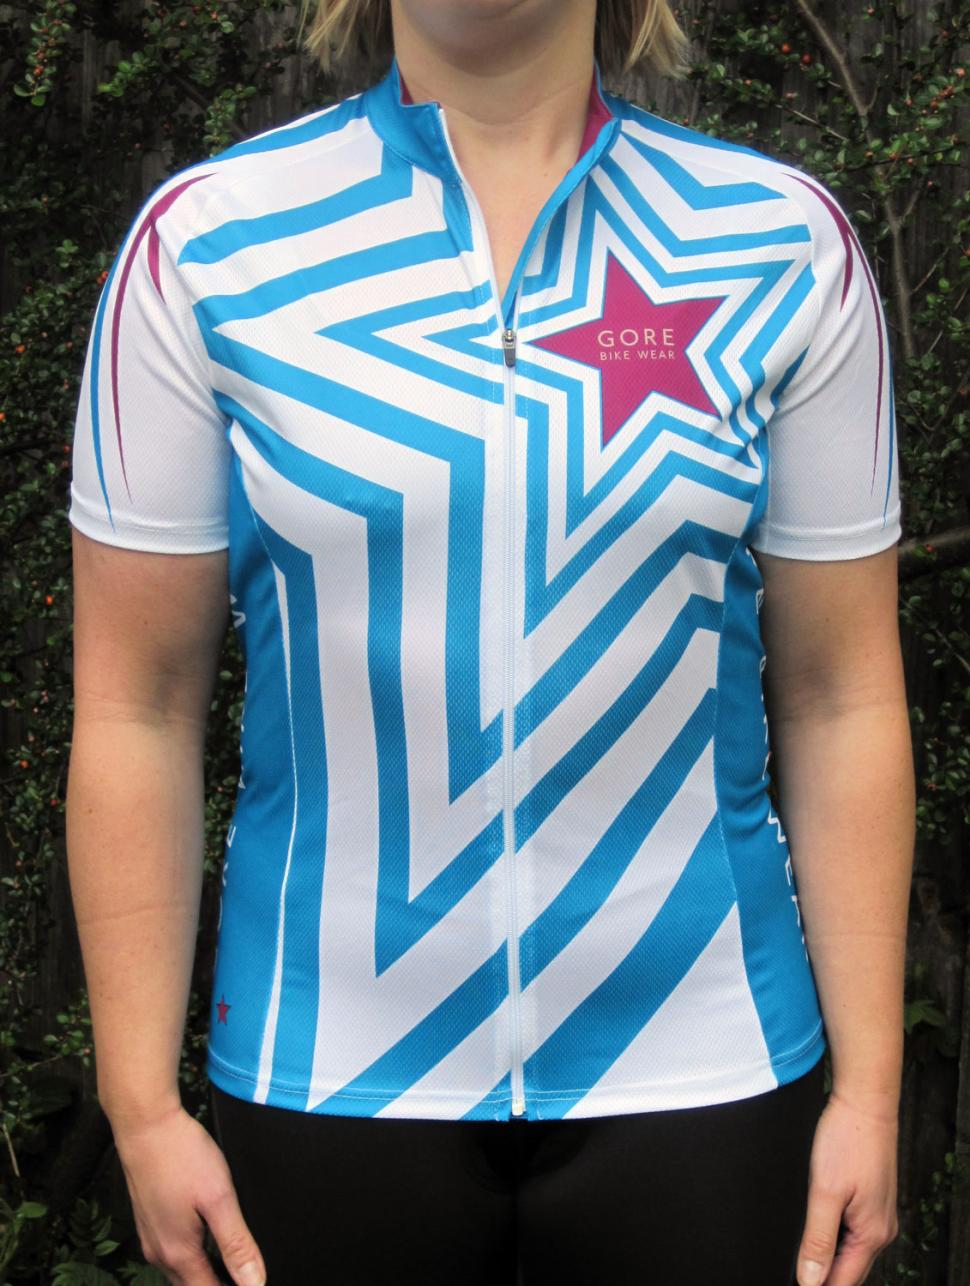 Gore Star Jersey - front